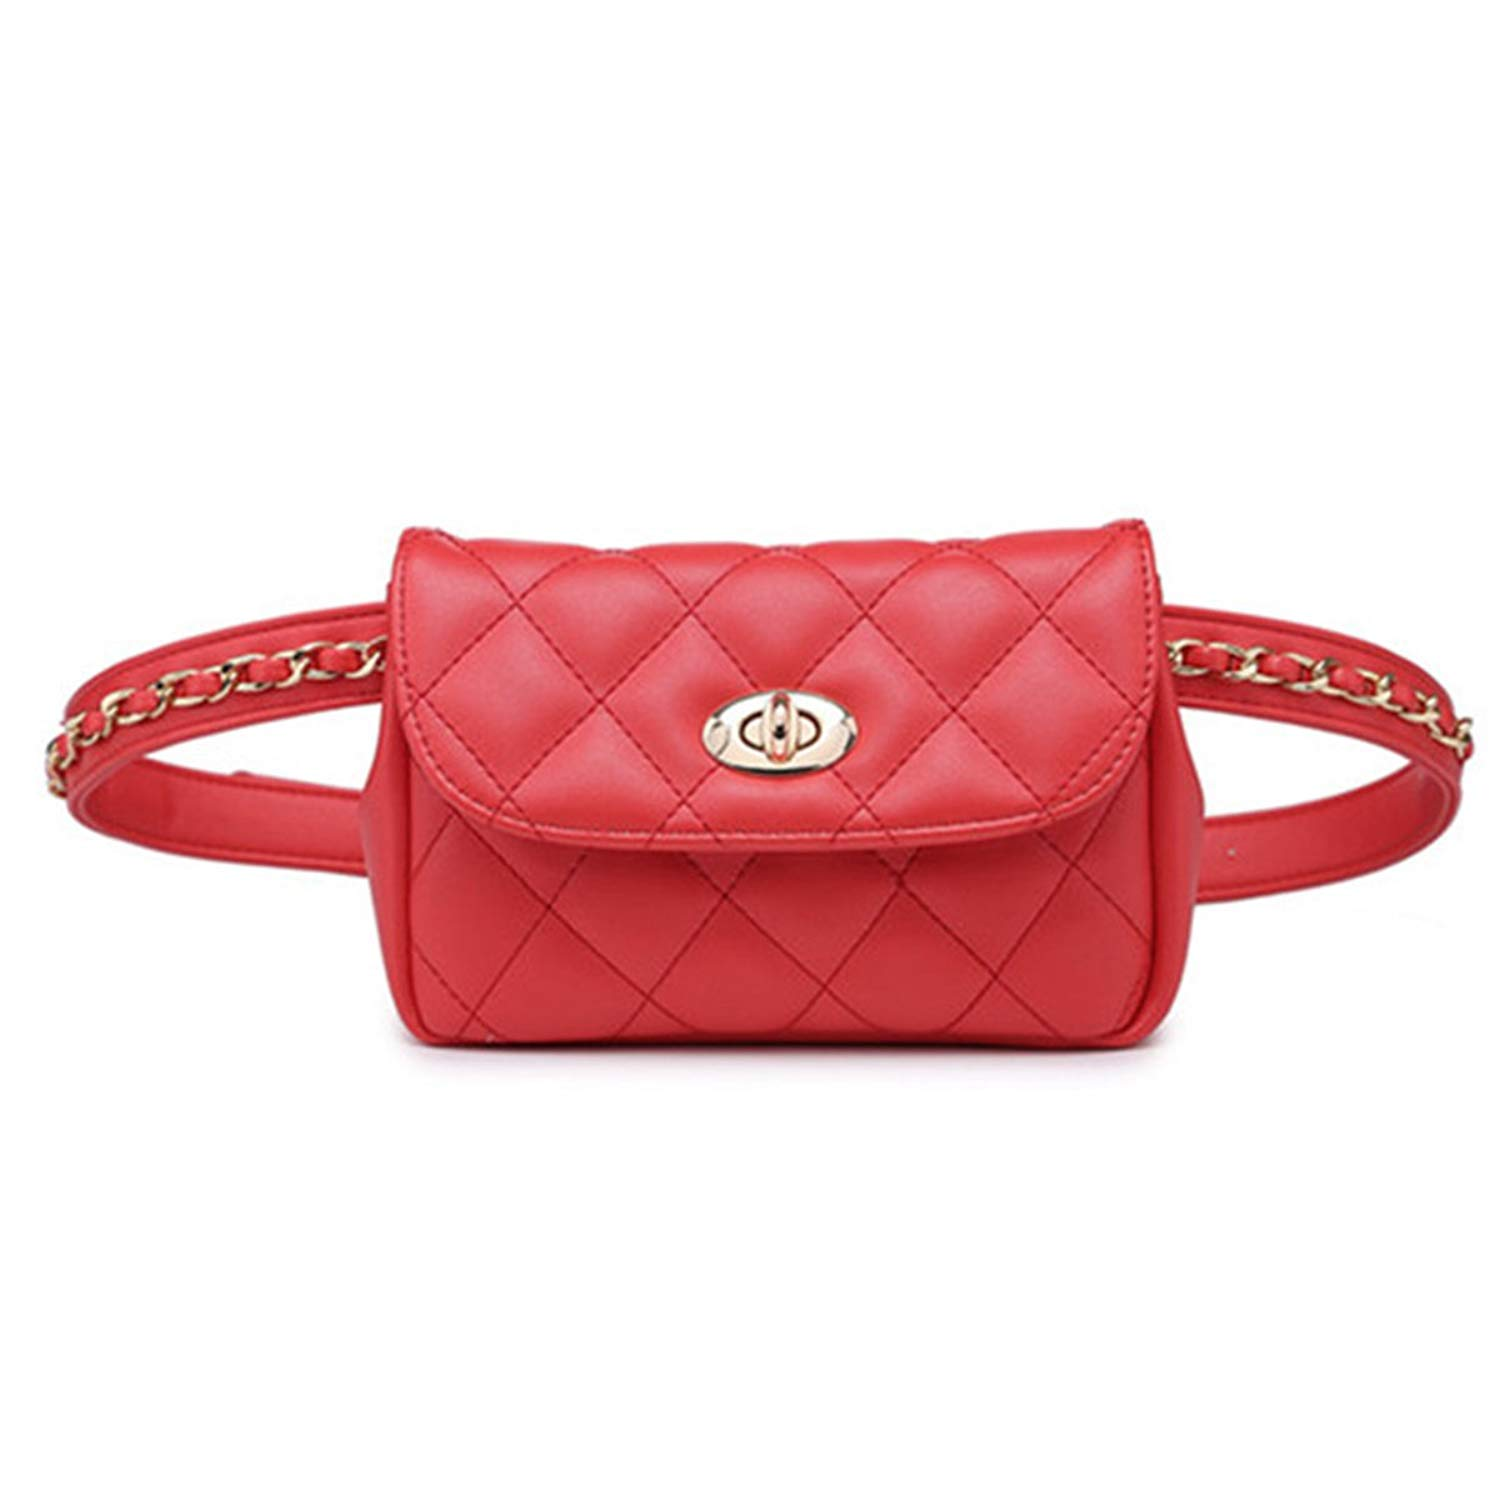 1f537ab15206 Cheap Cute Fanny, find Cute Fanny deals on line at Alibaba.com